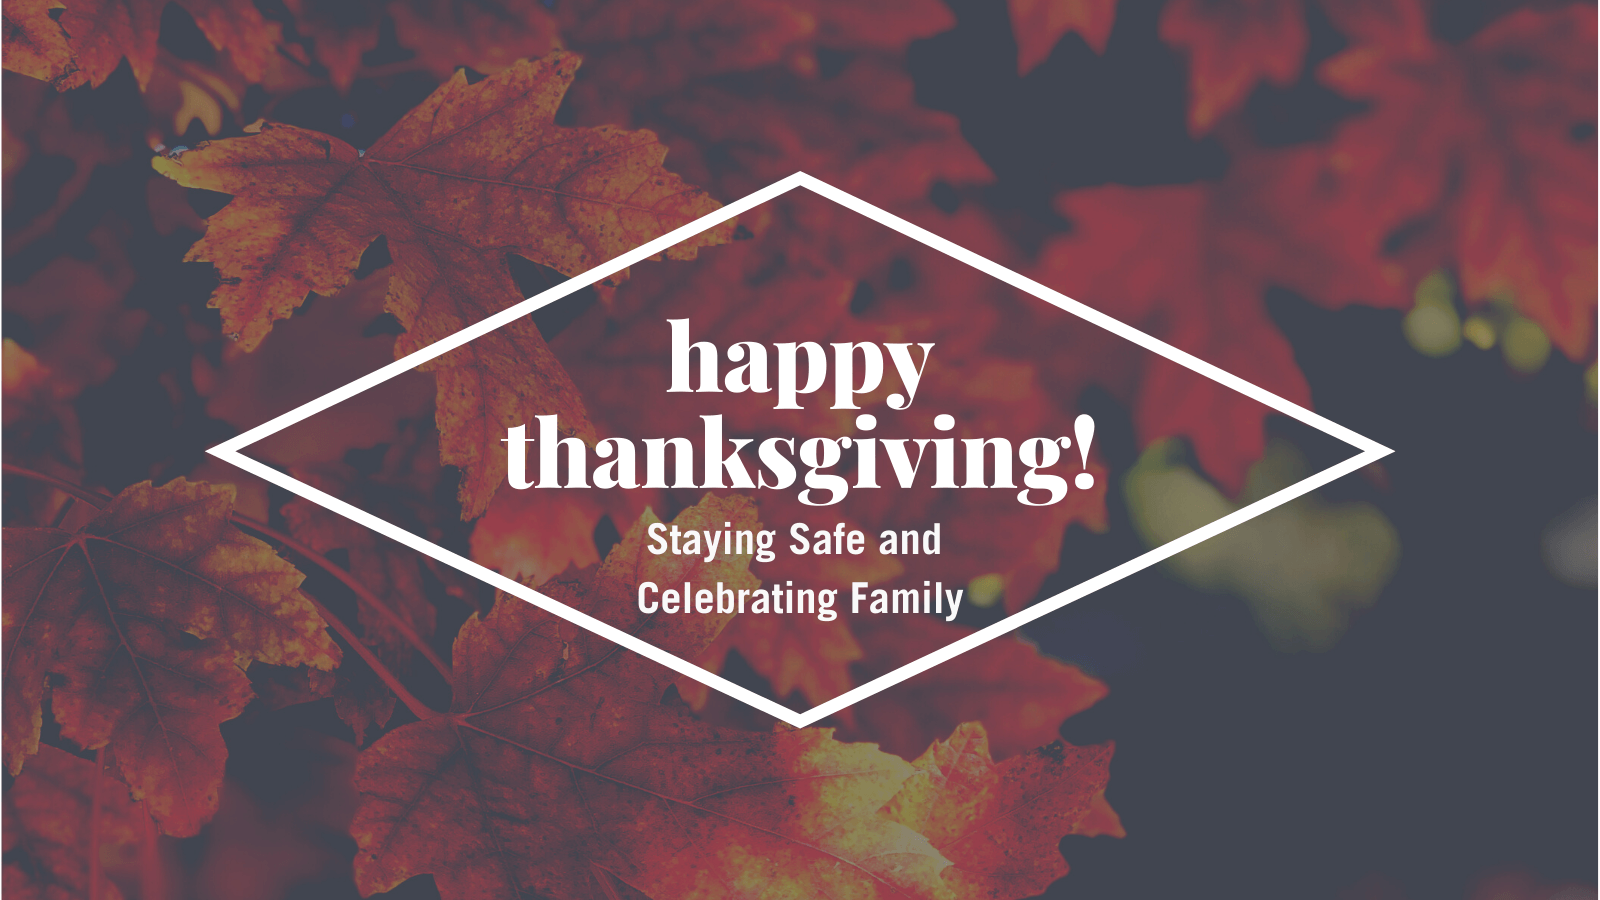 Happy Thanksgiving: Staying safe and celebrating family in 2020